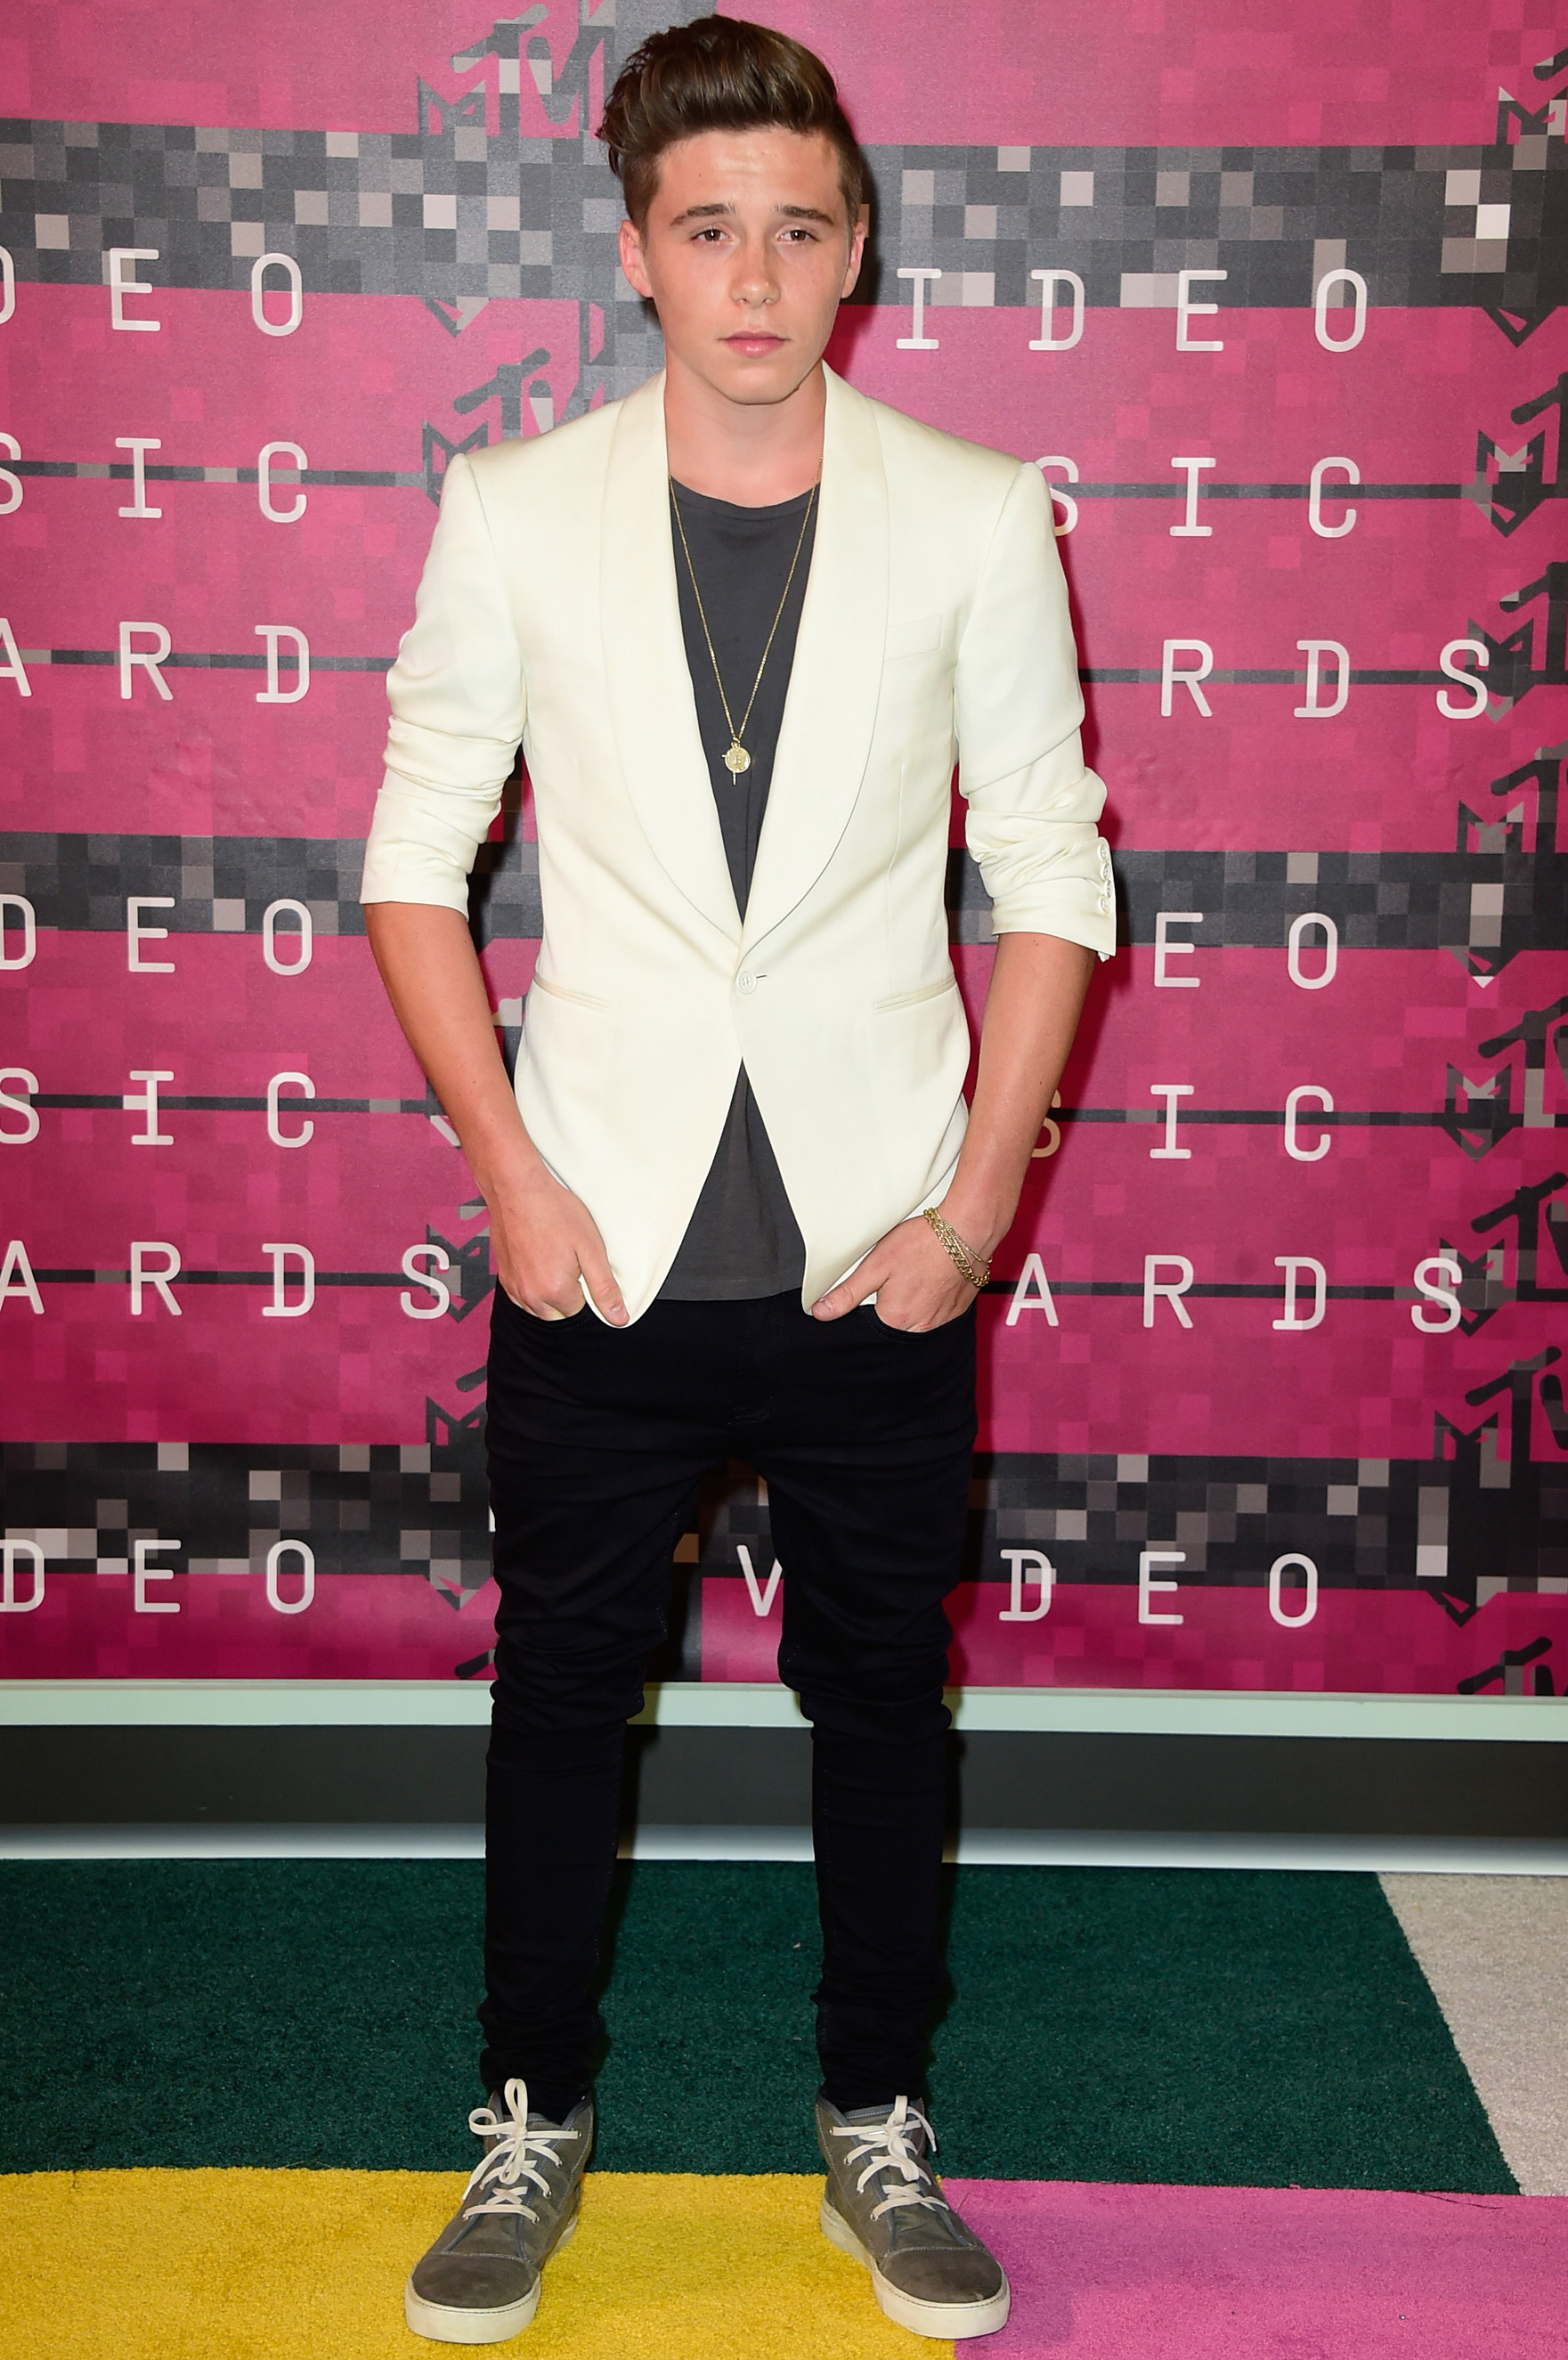 Brooklyn Beckham arrives at the 2015 MTV Video Music Awards at Microsoft Theater on Aug. 30, 2015 in Los Angeles.